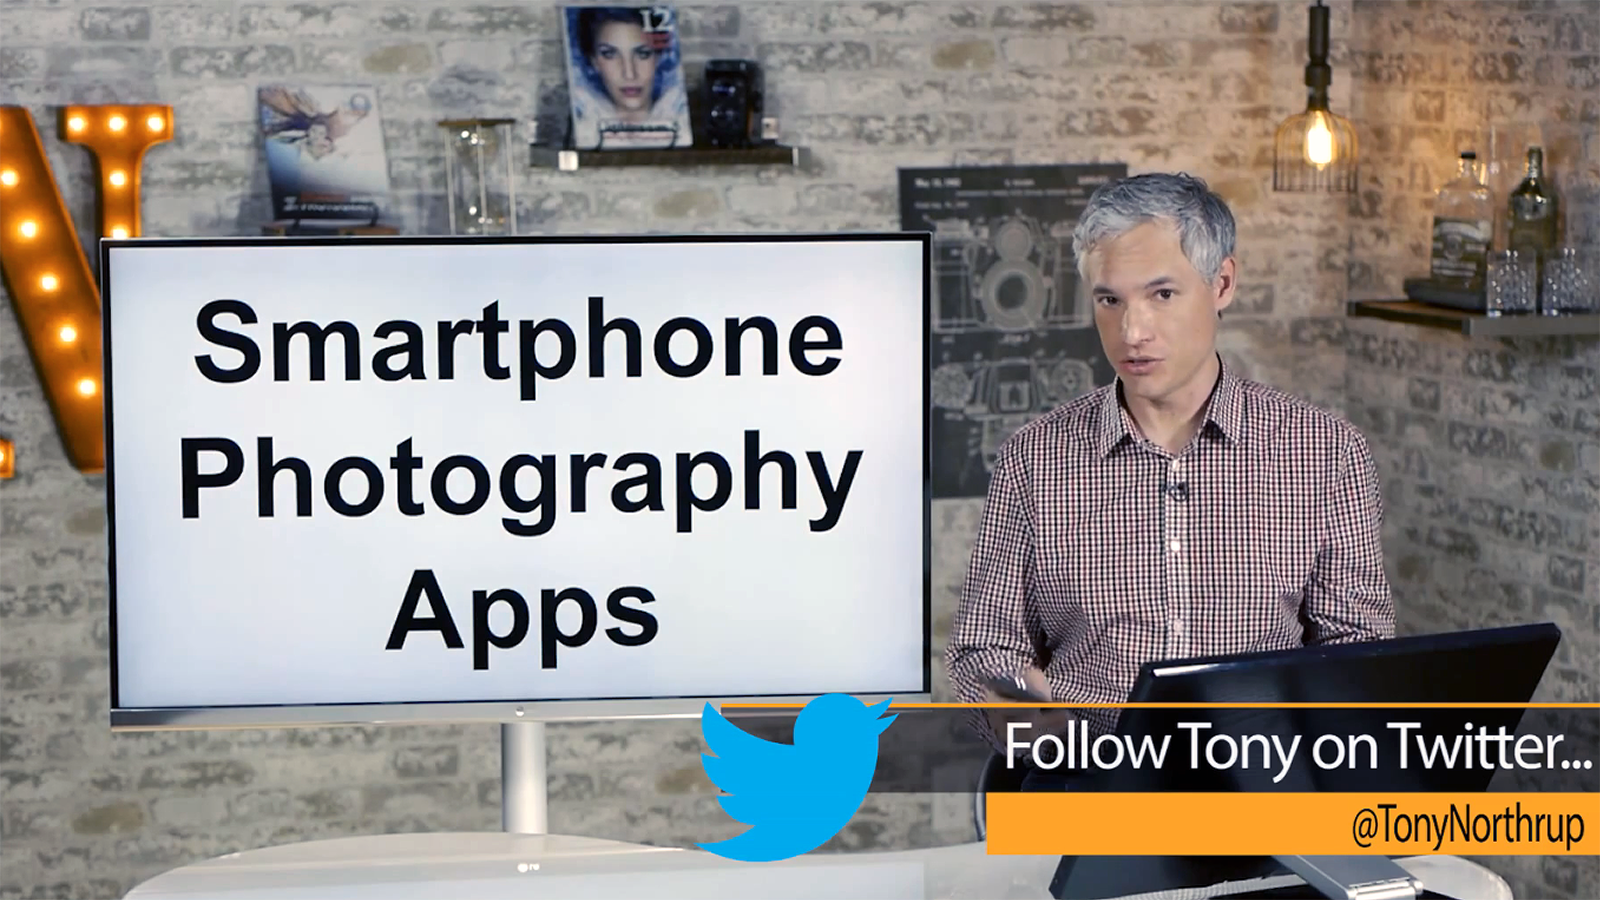 Award Winning Photographer and Author, Tony Northrup Reviews his favorite Smartphone Photography Apps